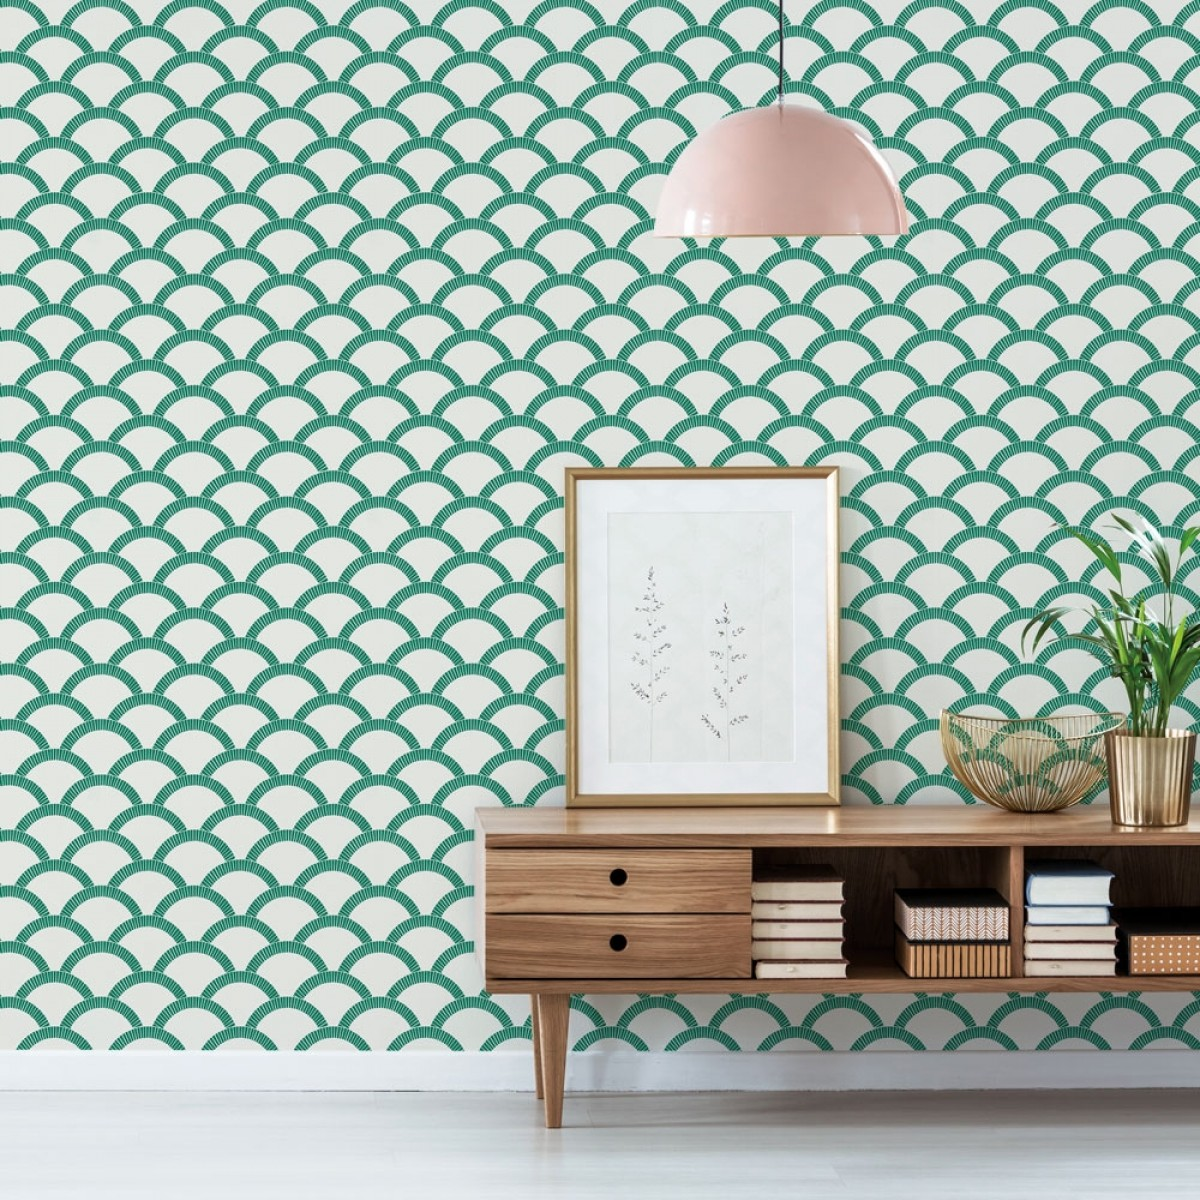 Designer Wallpaper Ideas Photos: 24 Gorgeous Wallpaper Designs To Transform Your Space